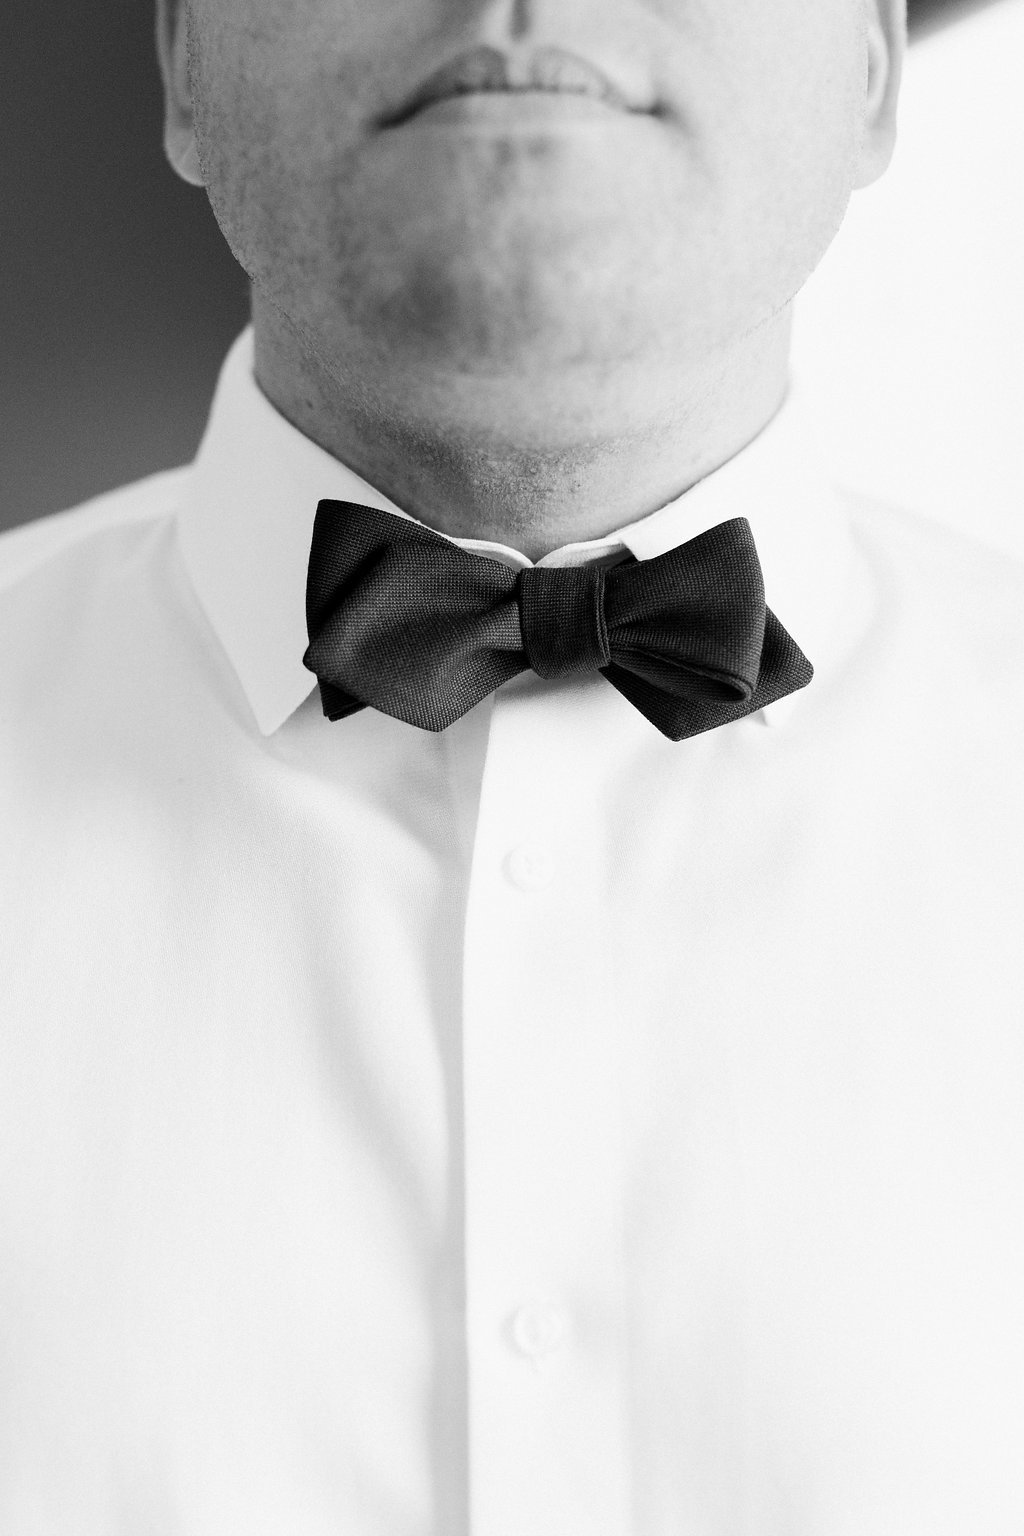 Close up photo of groom's bowtie during getting ready portraits - J Verno Studios Winter Wedding